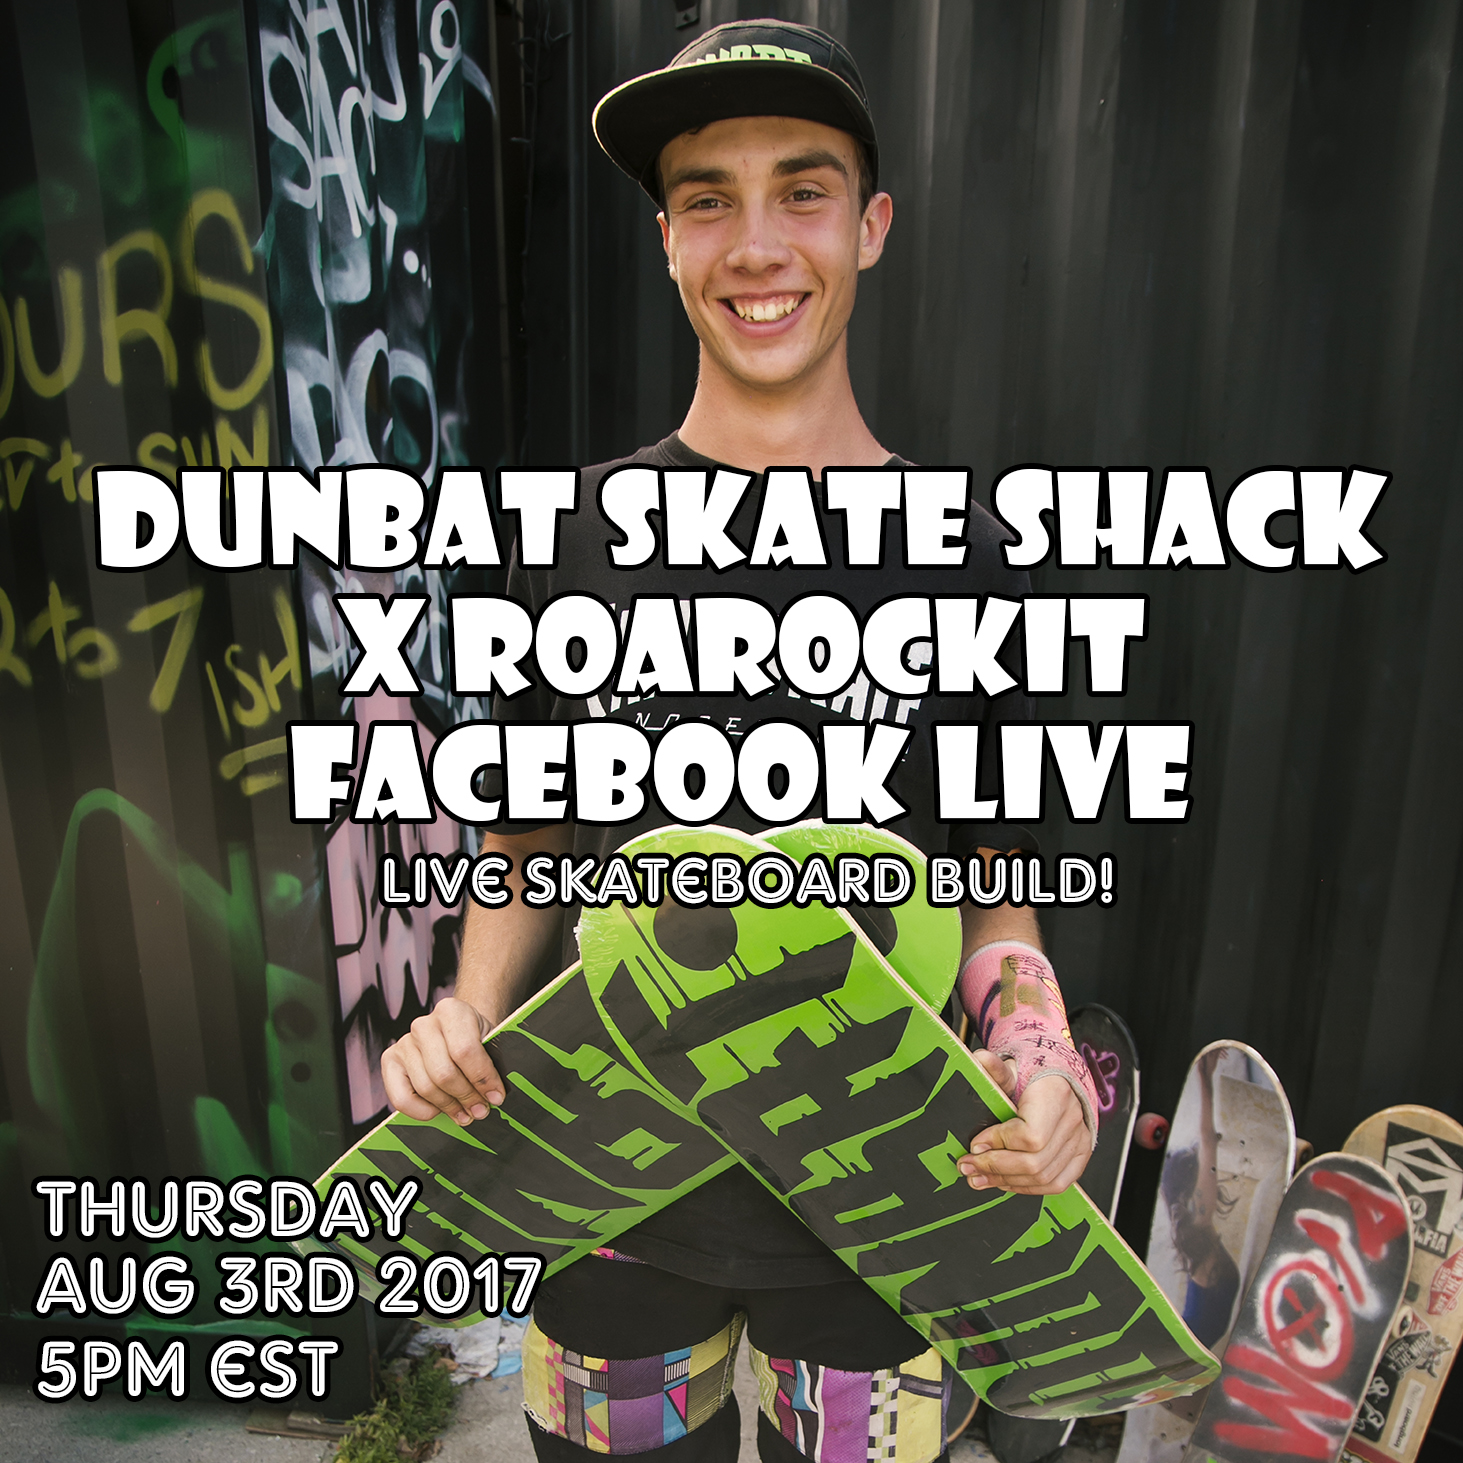 We'll be doing a Facebook live board demo with Zach on Thursday August 3rd 2017 5pm EST